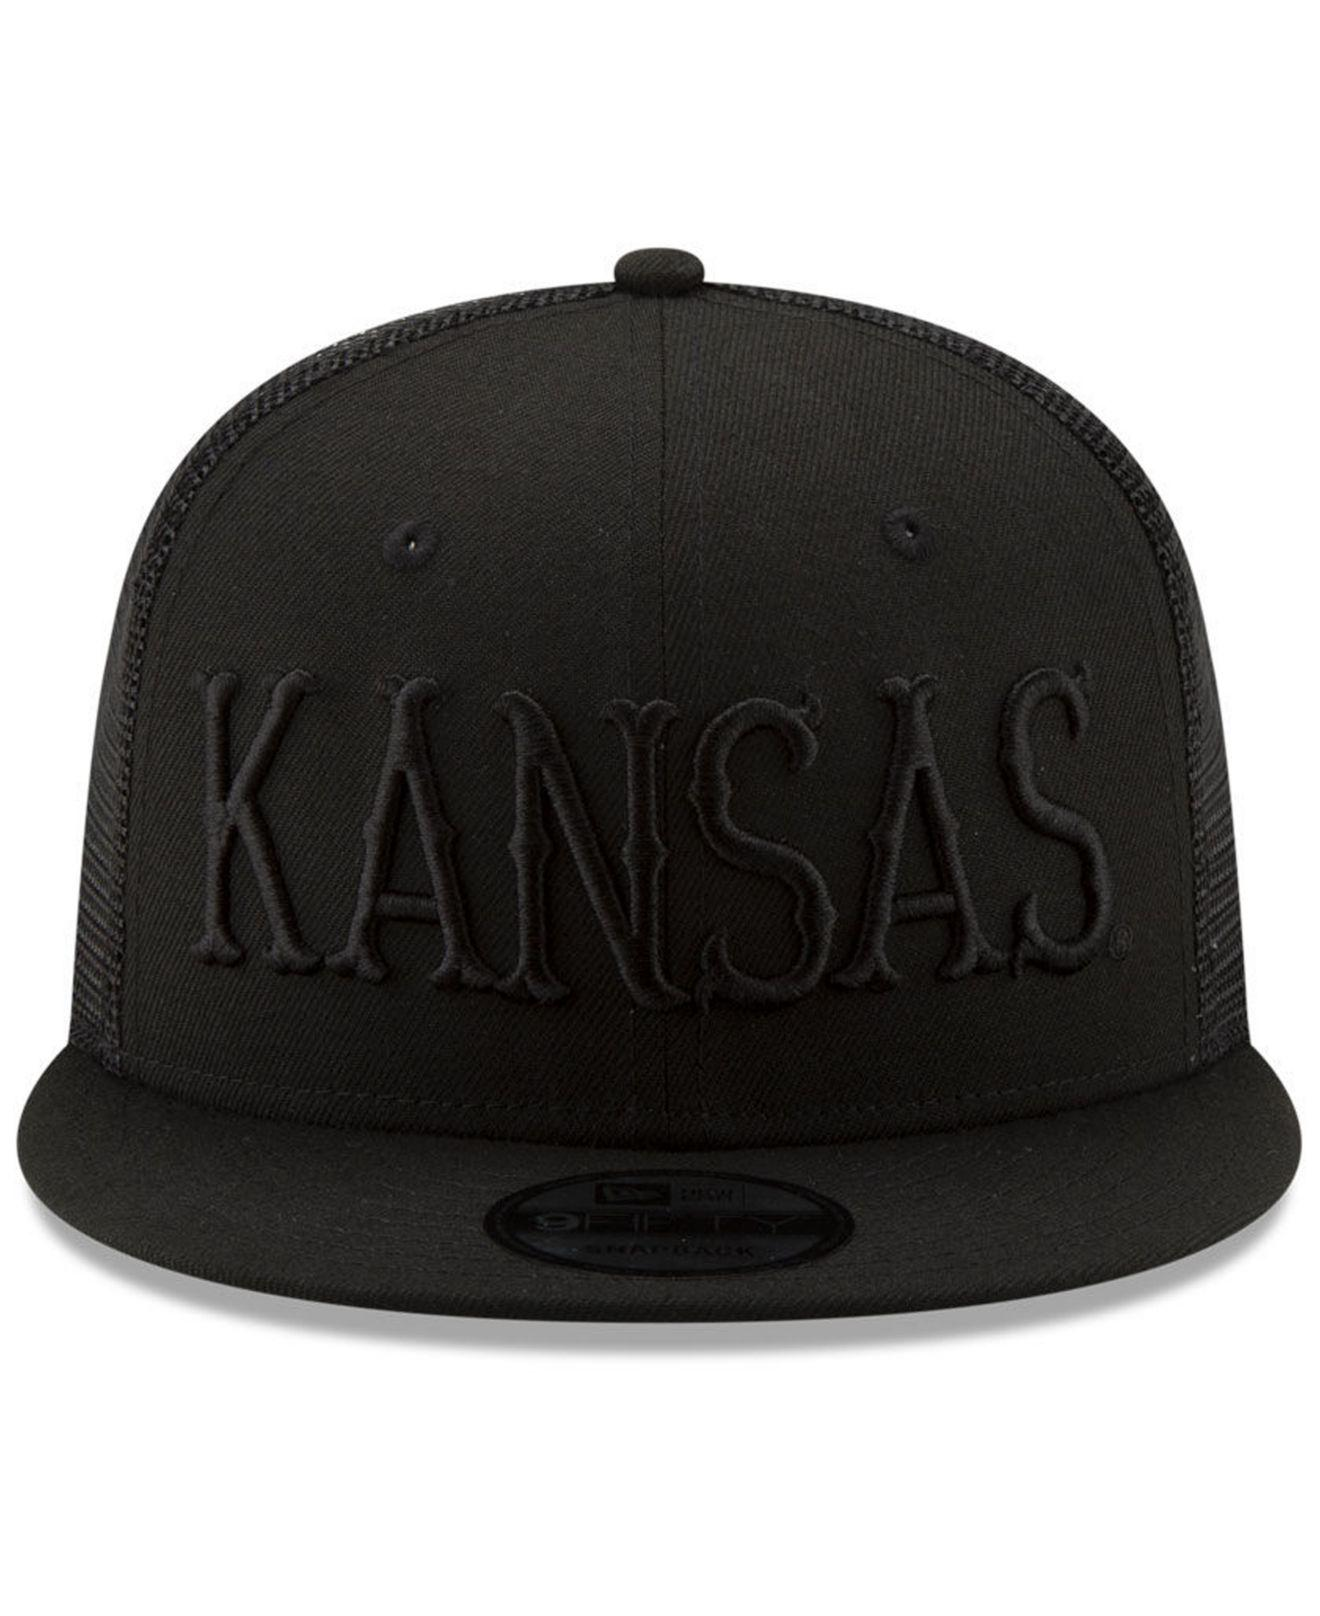 e5960b7dafd Lyst - KTZ Kansas Jayhawks Black On Black Meshback Snapback Cap in Black  for Men